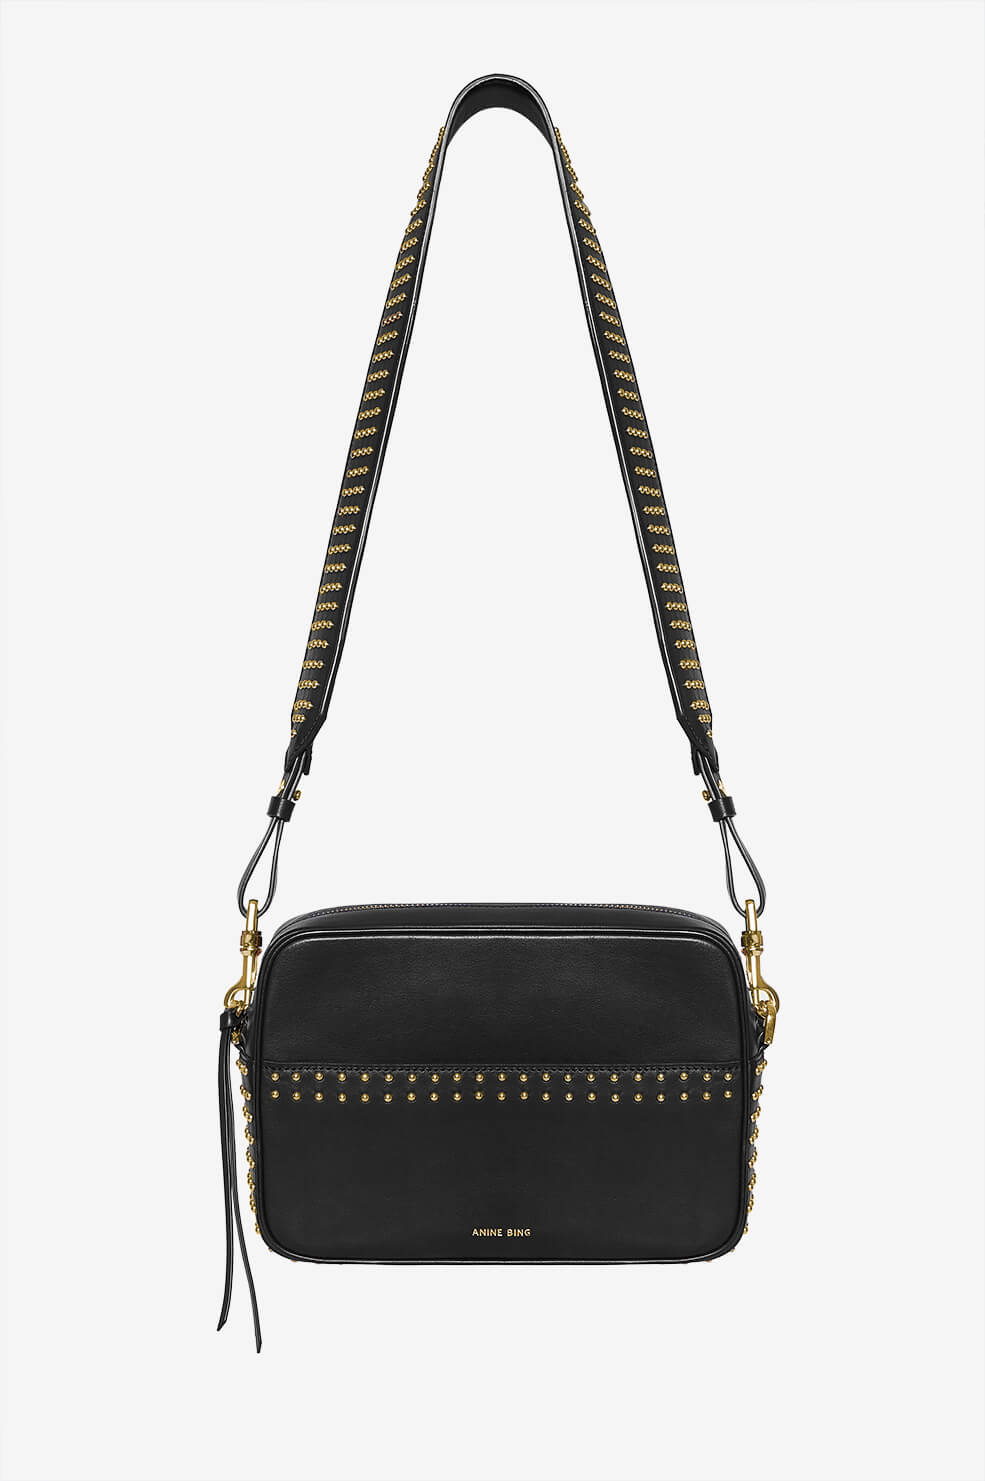 Alice Bag - Solid Black